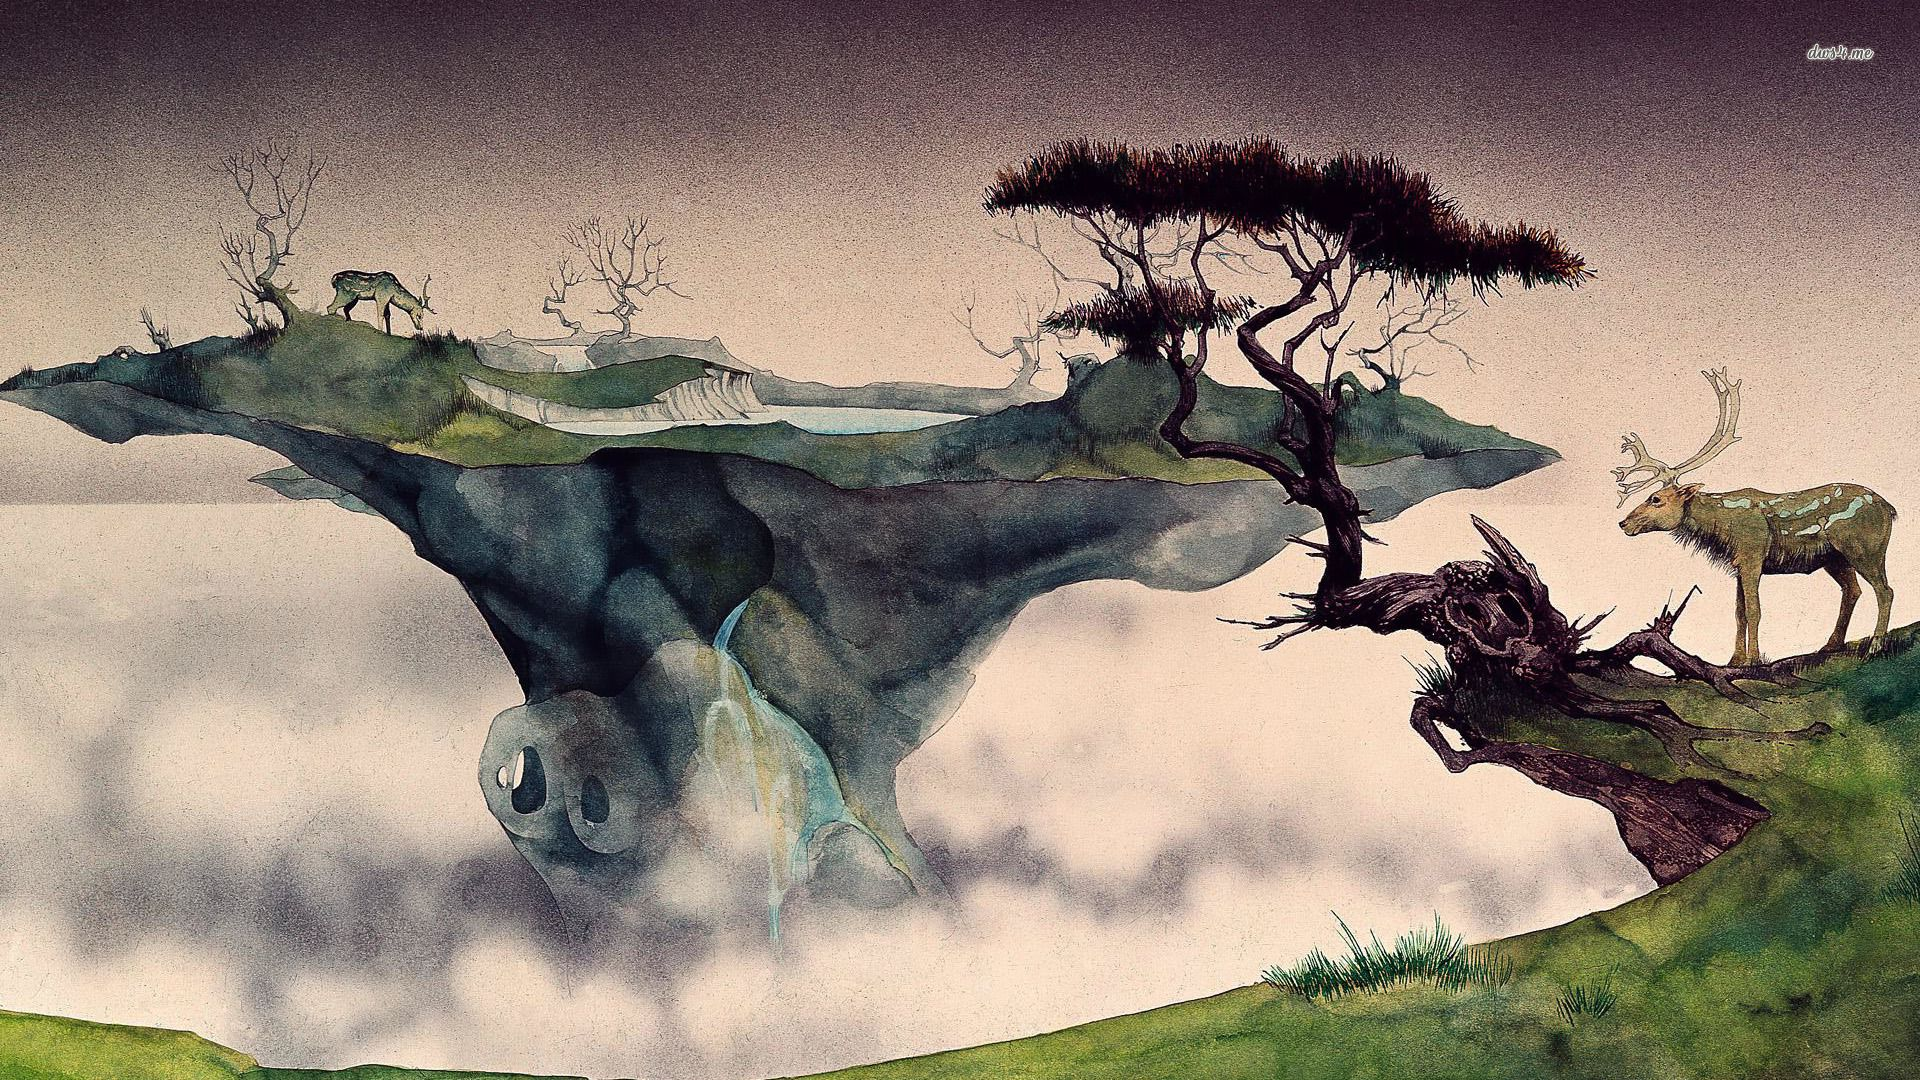 Wallpapers Inconceivable Worlds Of Roger Dean Roger Dean